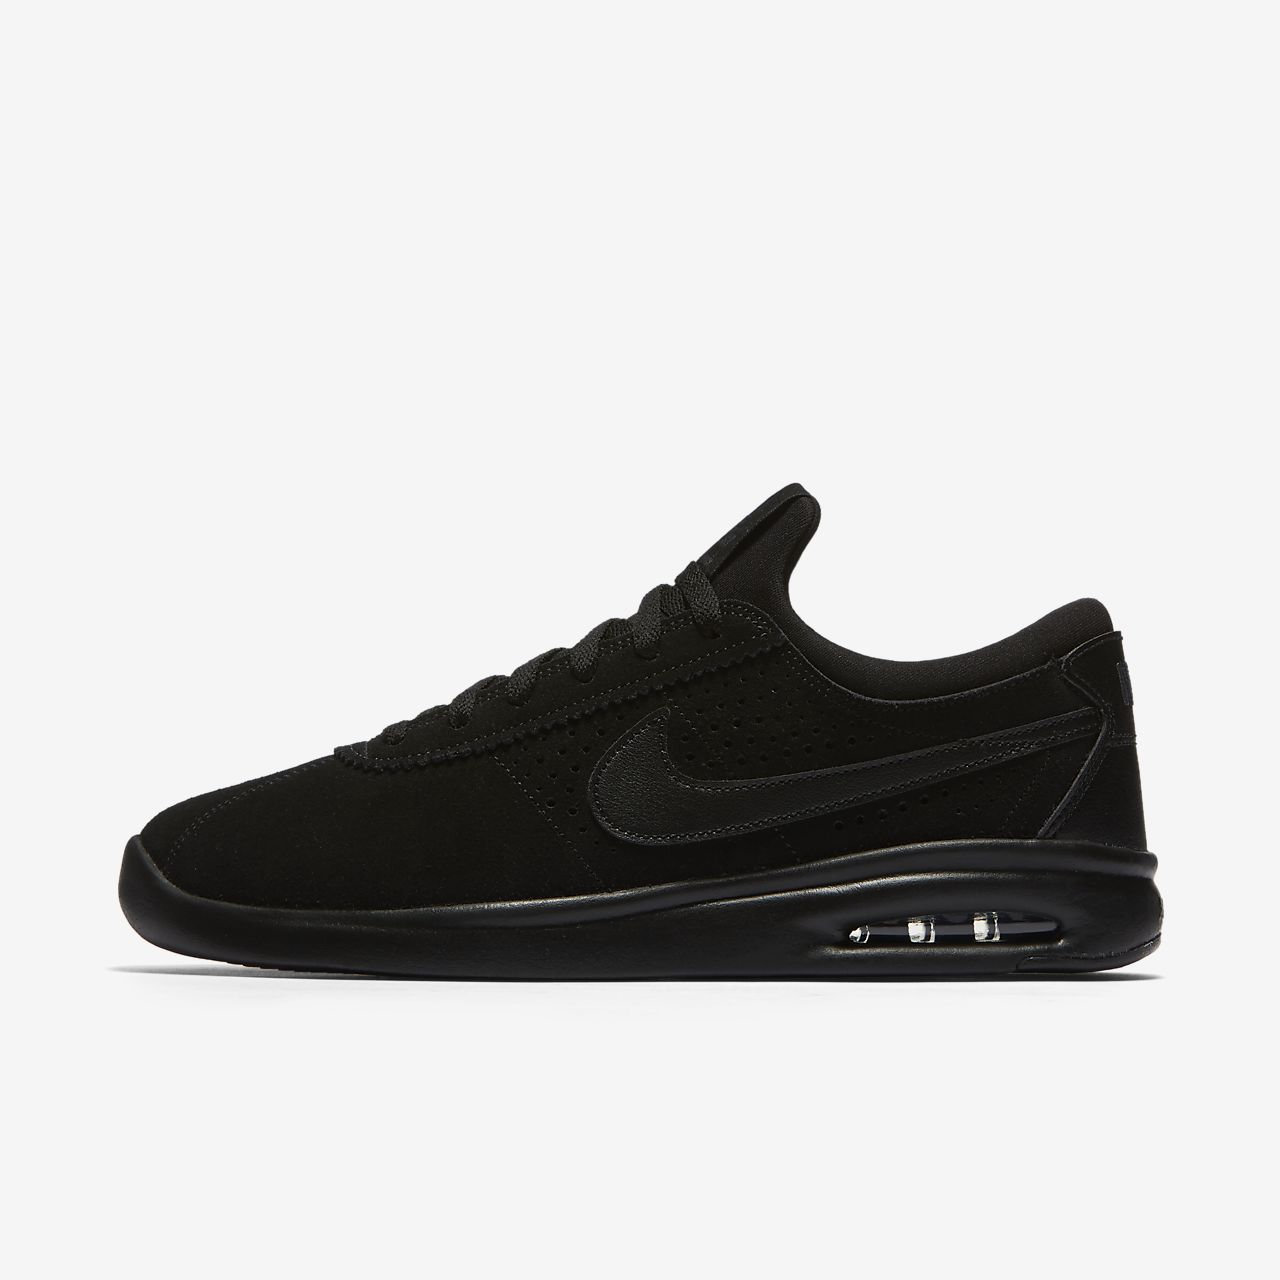 New NIKE SB Air Max Bruin Vapor Skate Shoes Mens triple black all sizes